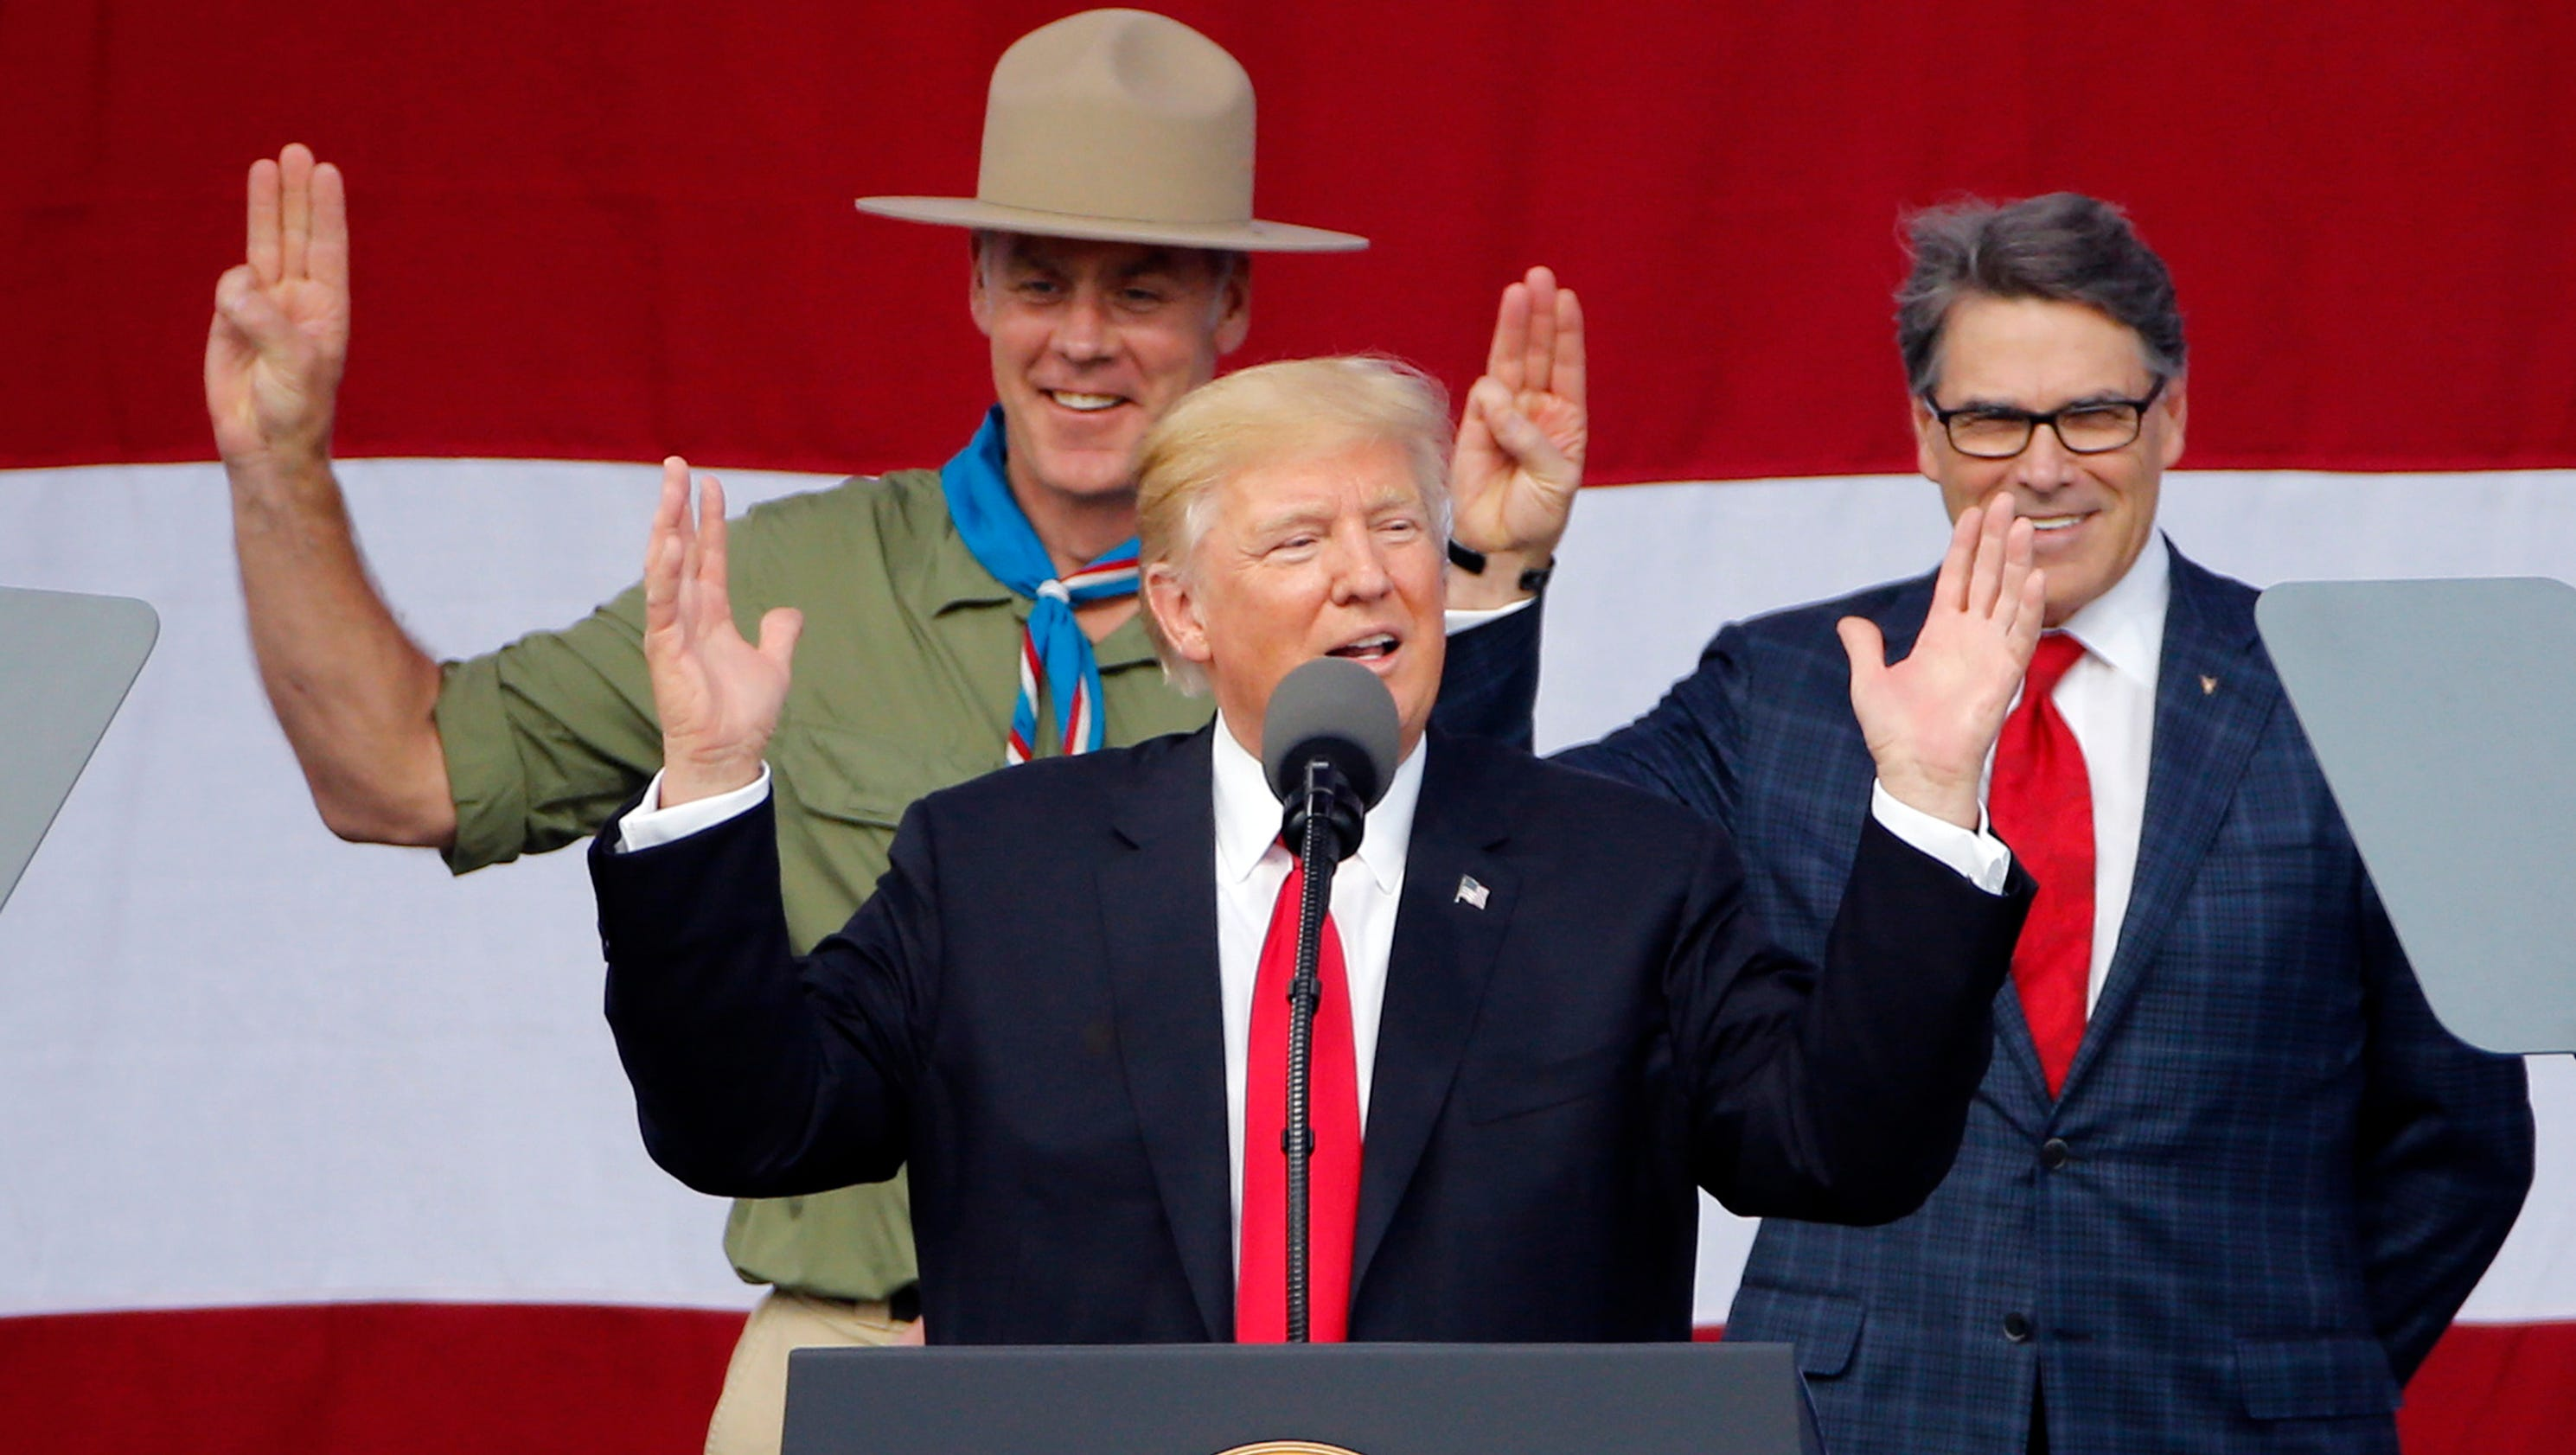 Trump's Boy Scout Jamboree speech inspires #TrumpScoutBadges